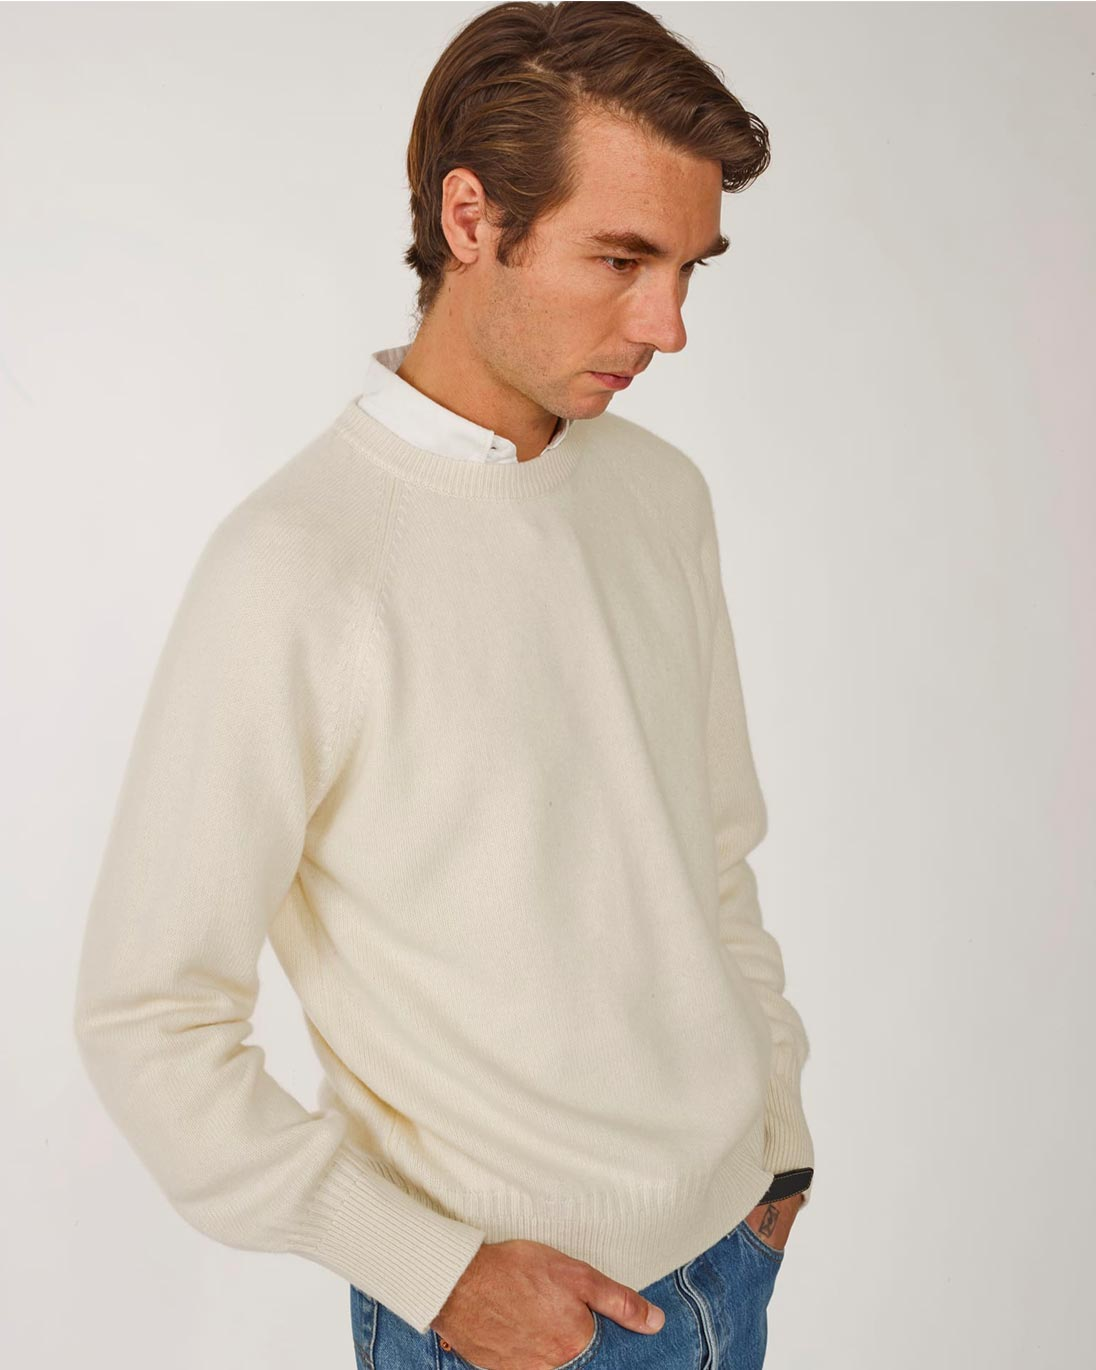 Tricot — Recycled cashmere sweater